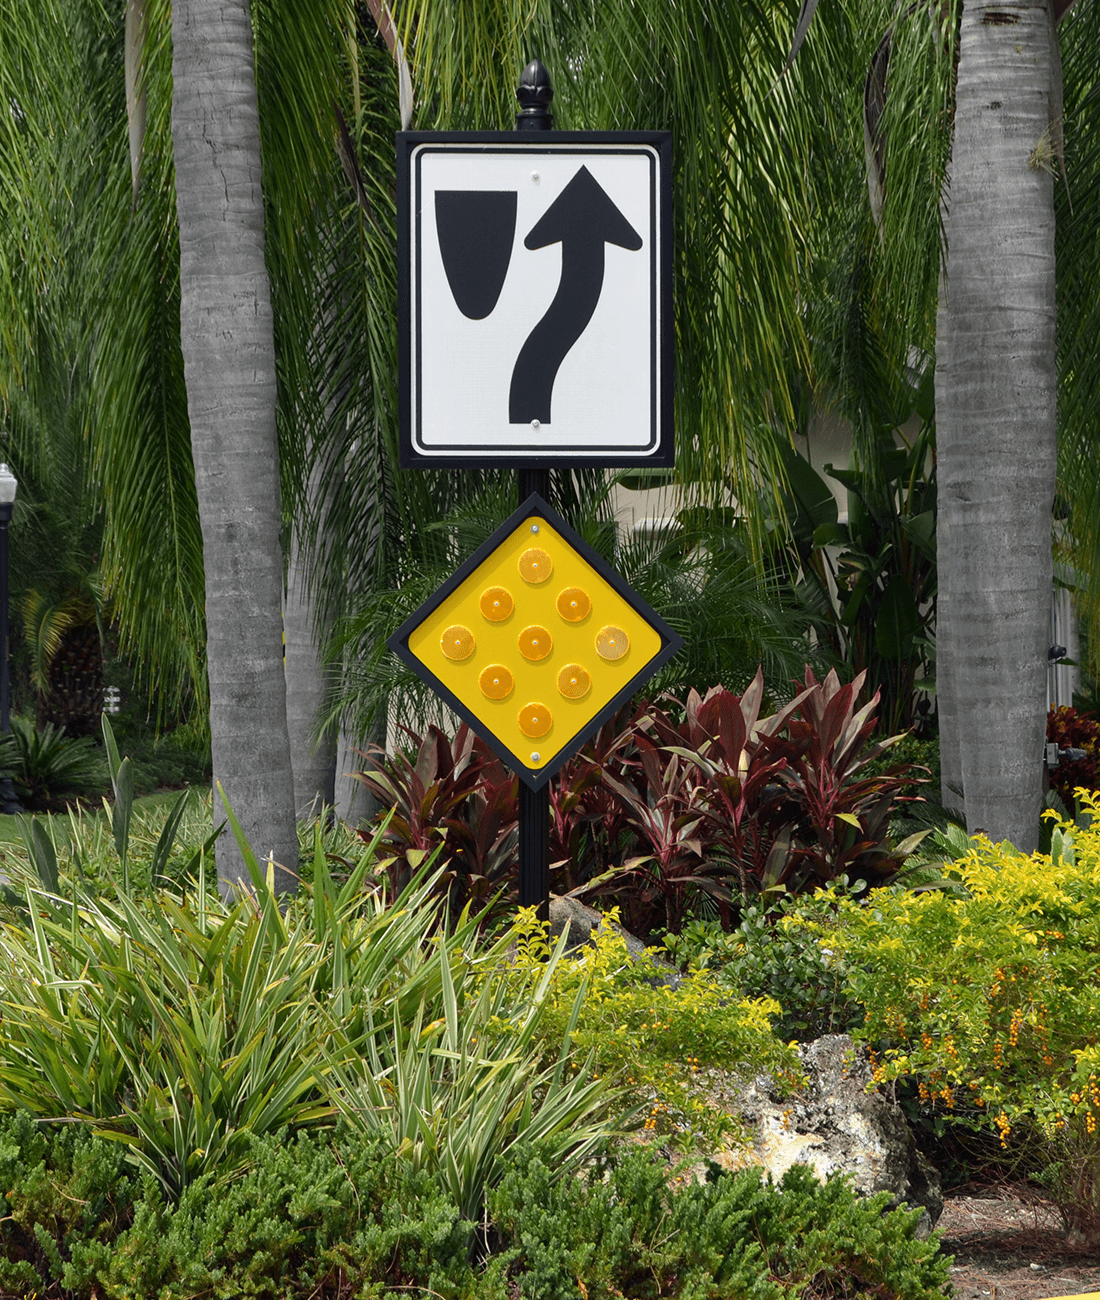 Historic Collection Keep Right Of Median & Nine Button Object Marker